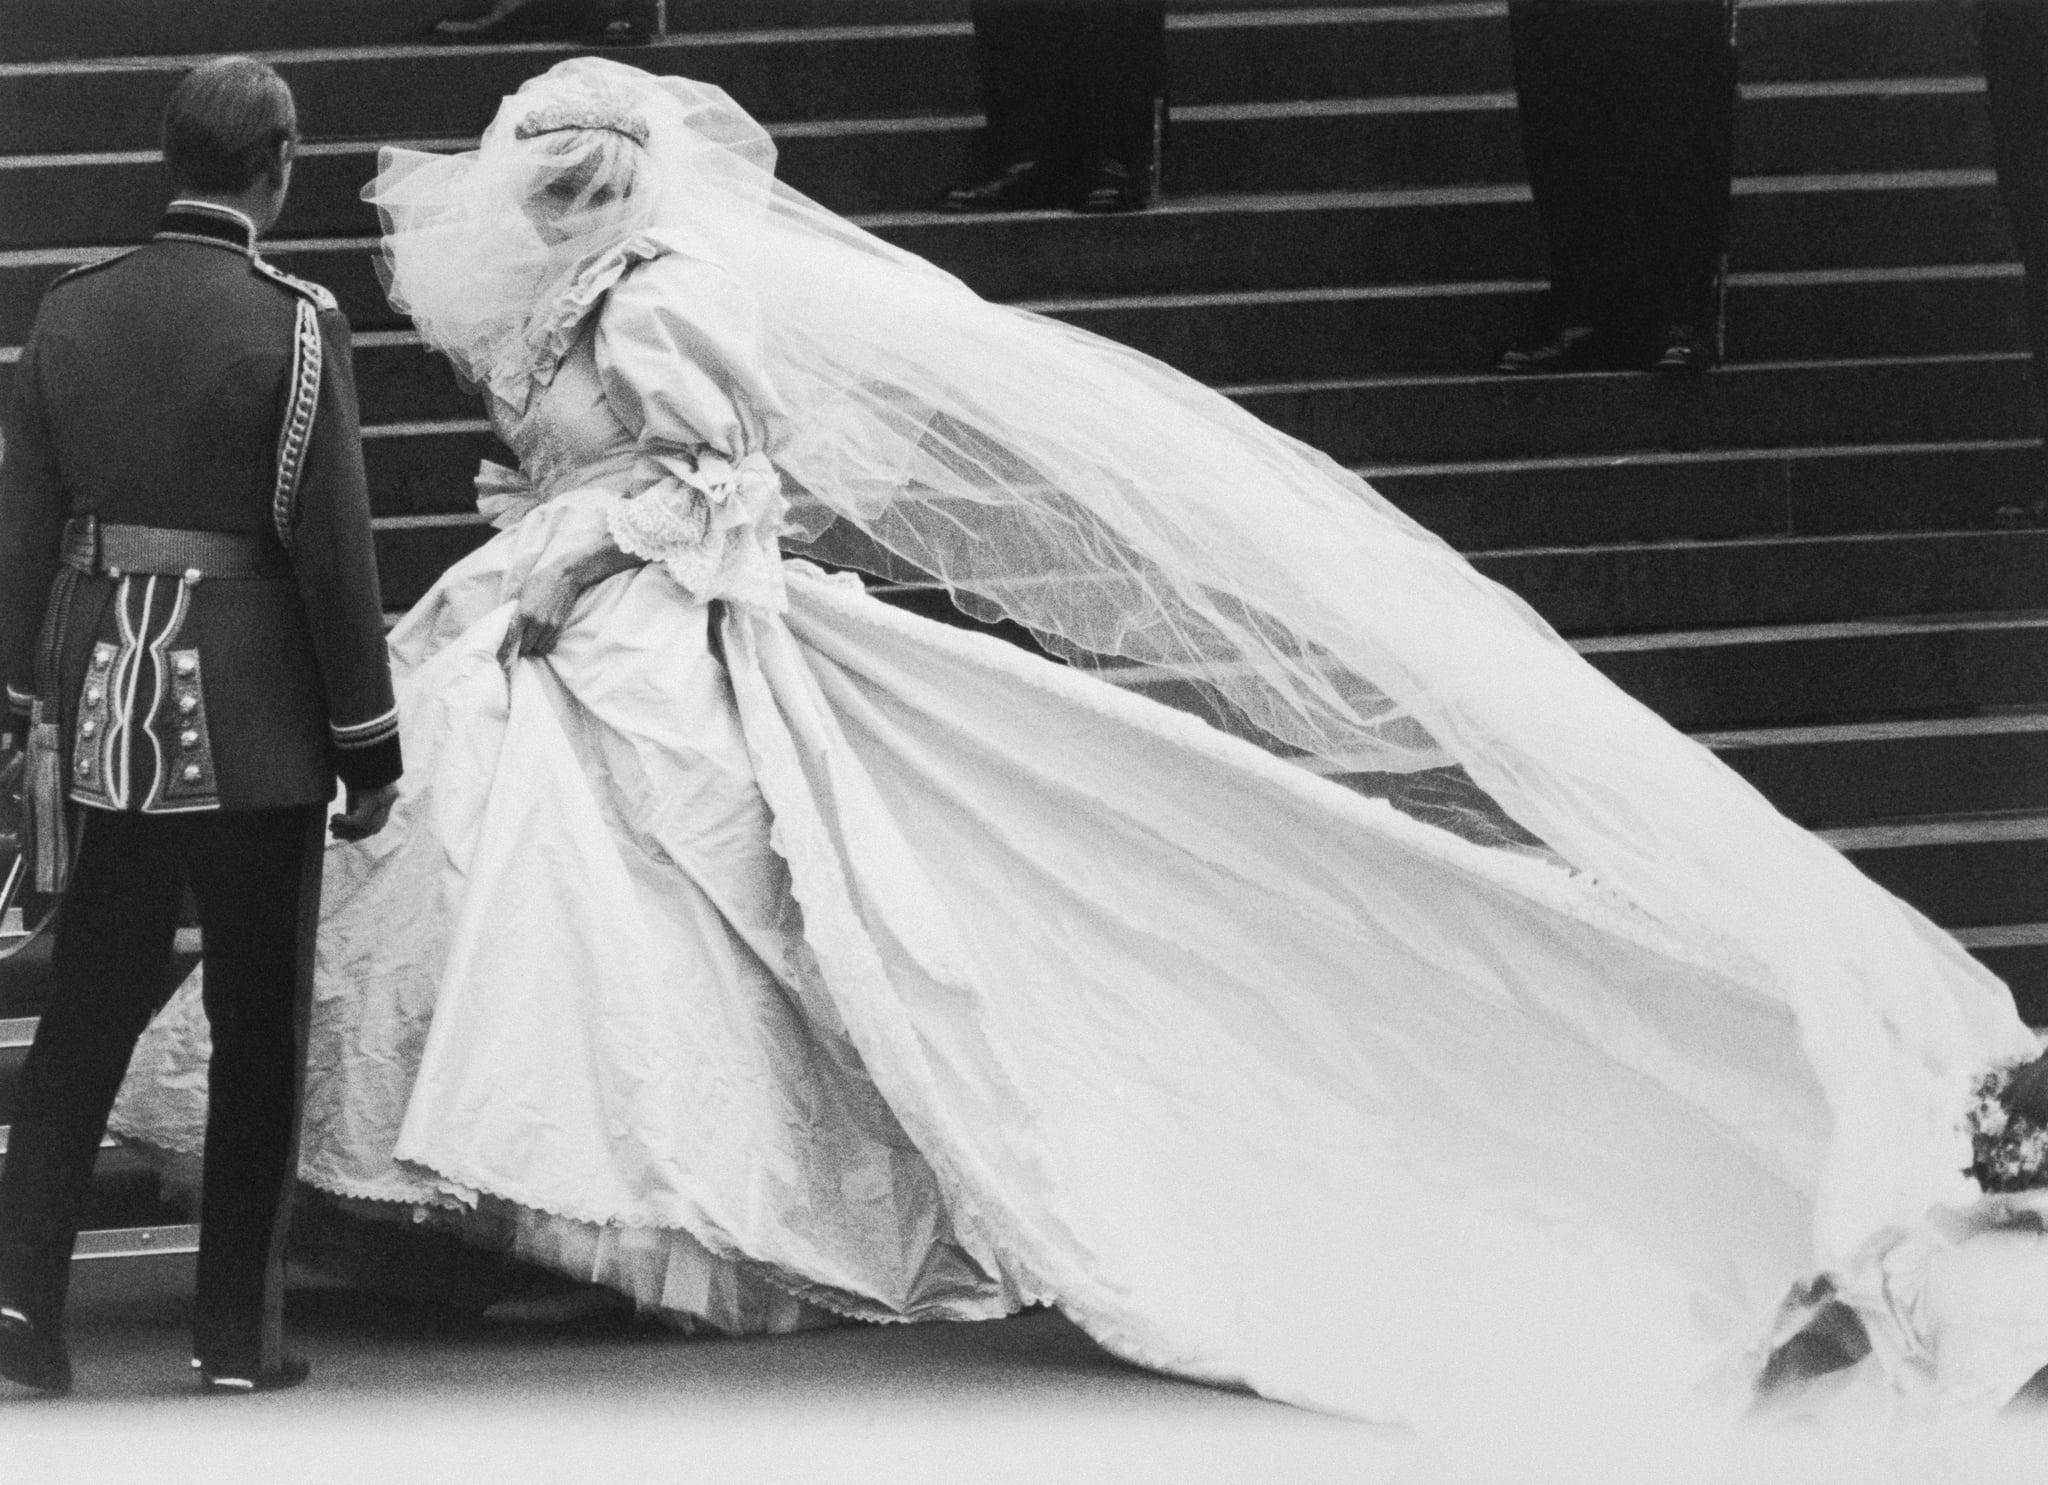 Lady Diana Spencer arrives at St. Paul's Cathedral on her wedding day, revealing to the world the wedding dress which had been carefully guarded during its design.